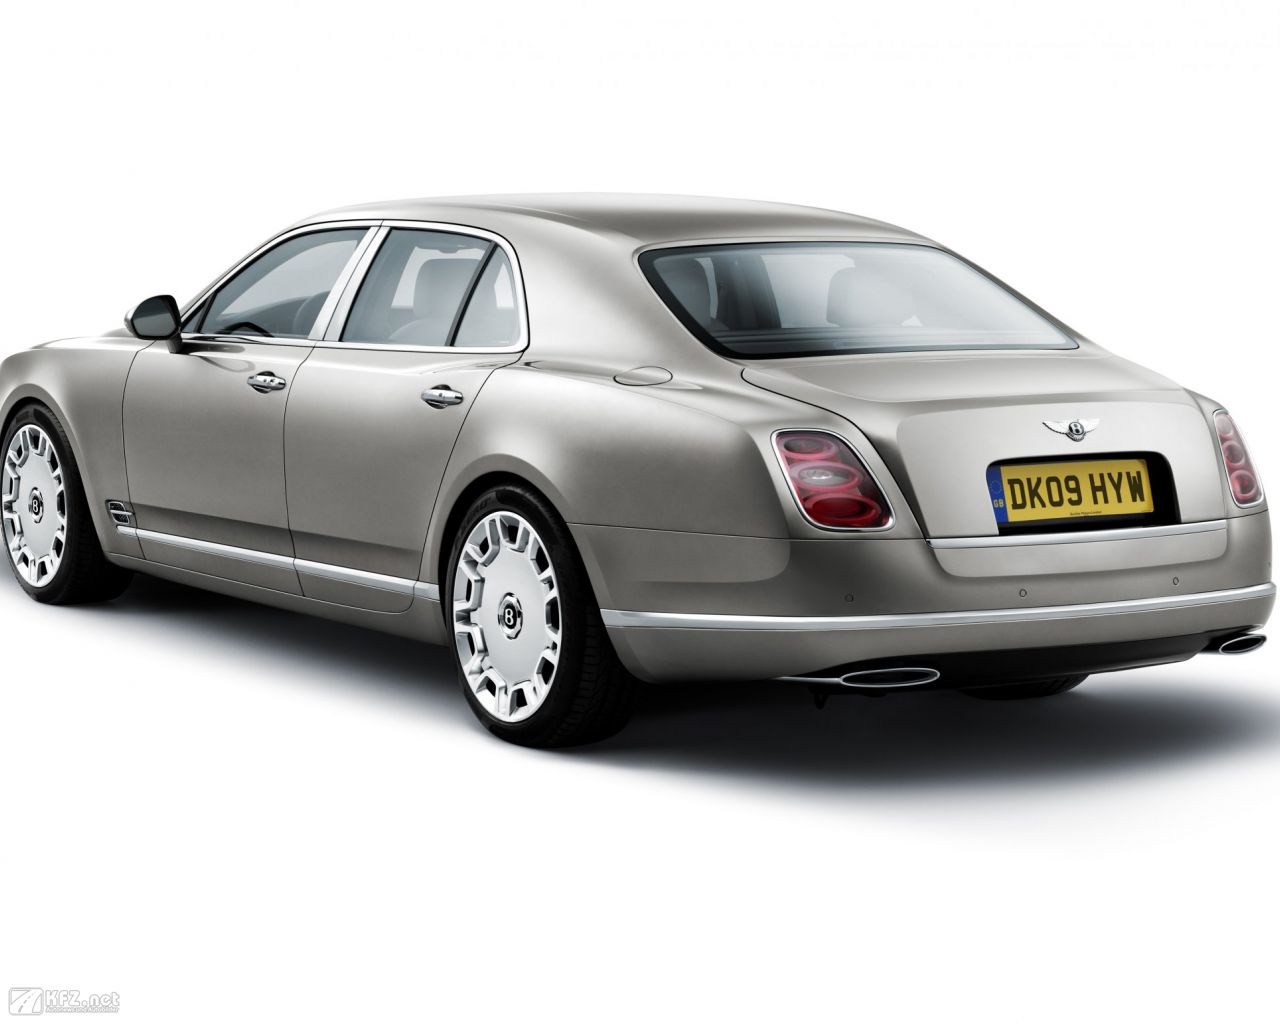 bentley-mulsanne-1280x1024-10